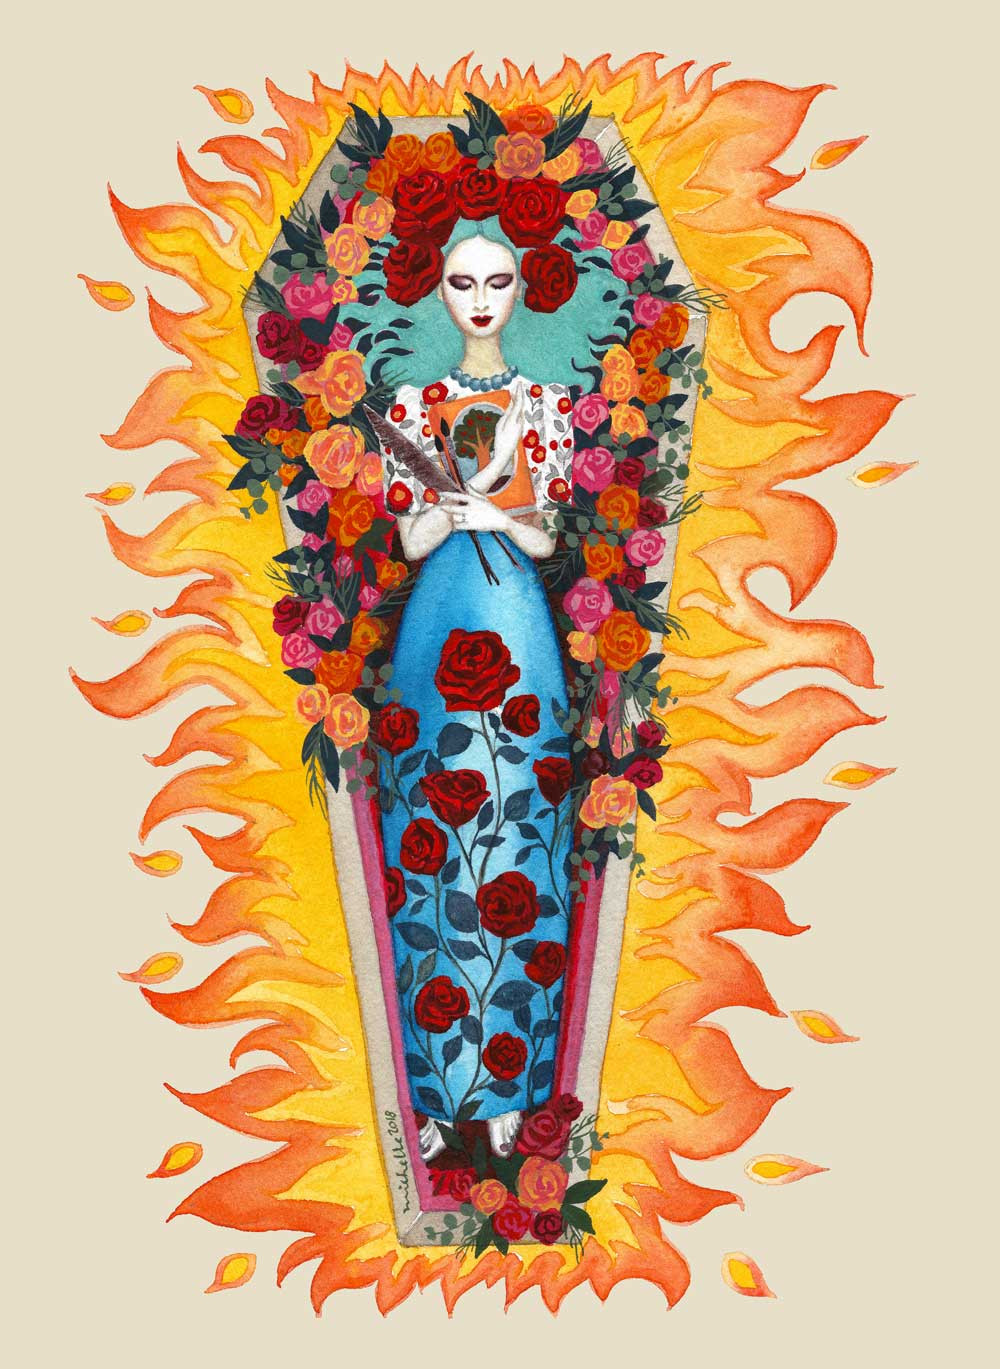 A woman in a coffin with roses